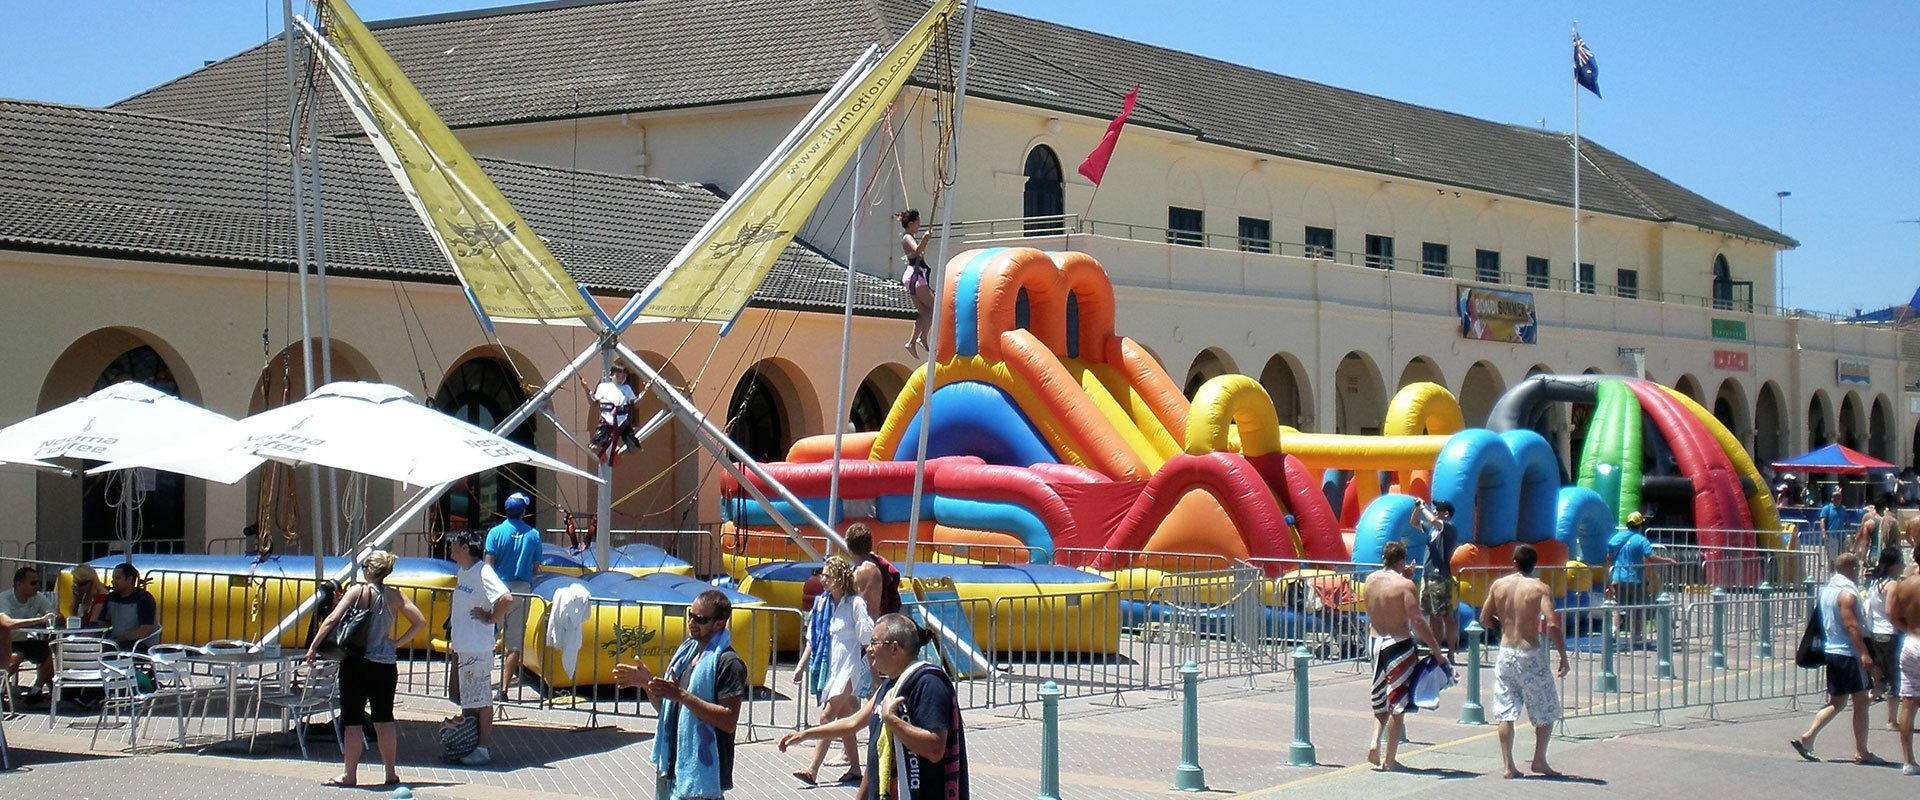 Young girl climbing onto the inflatable castle